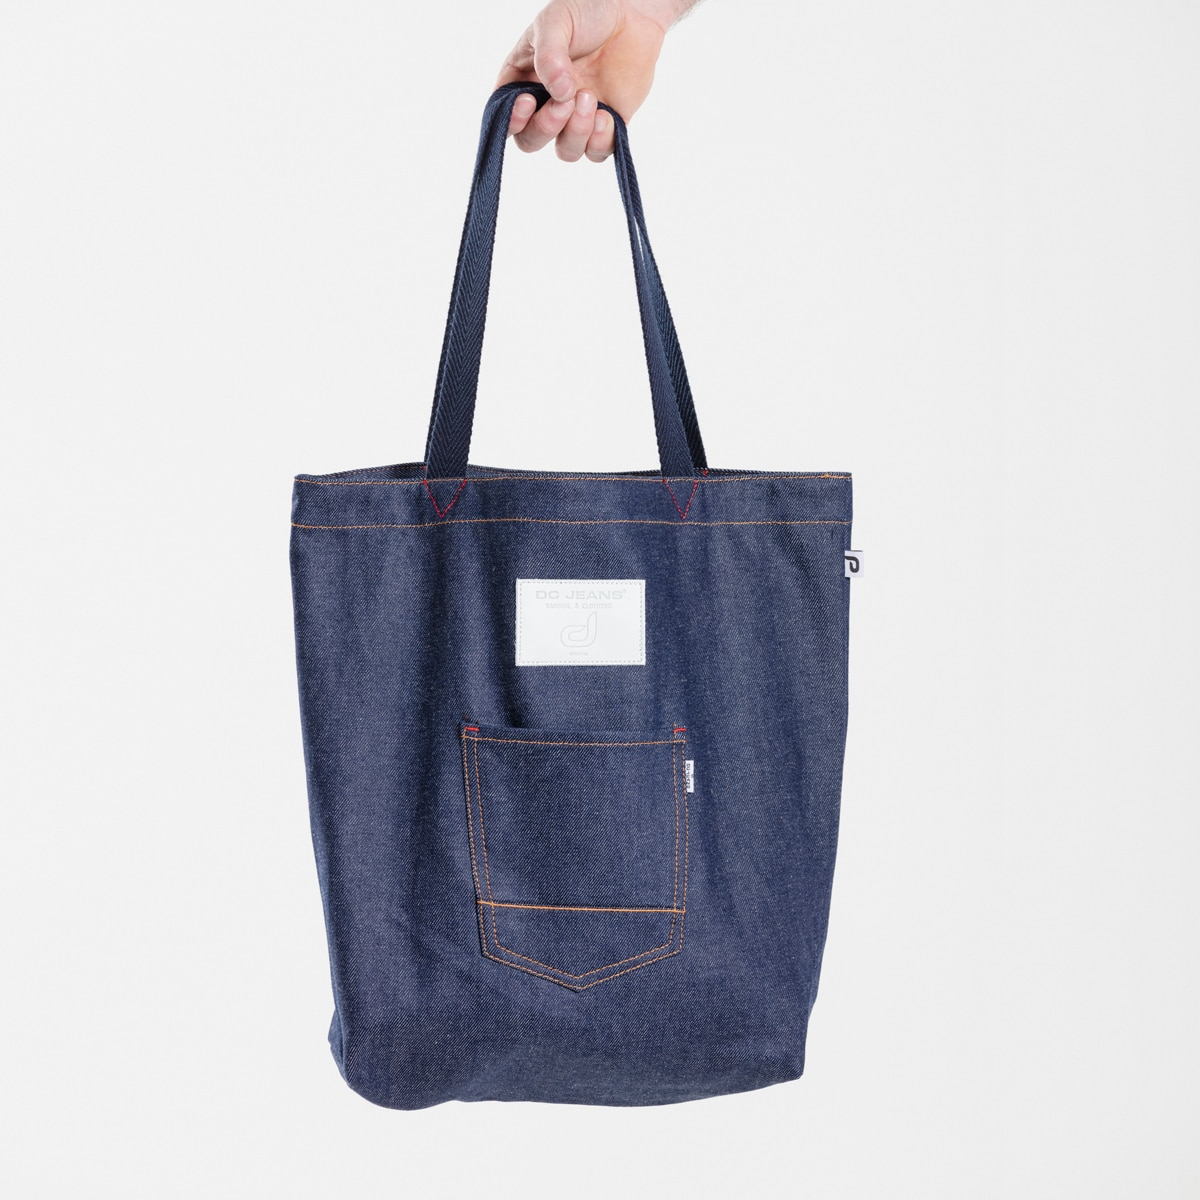 b98a3975fcbfe Tote bag Pocket denim DCJeans BL - DCJeans ® - sarouel & clothing ...